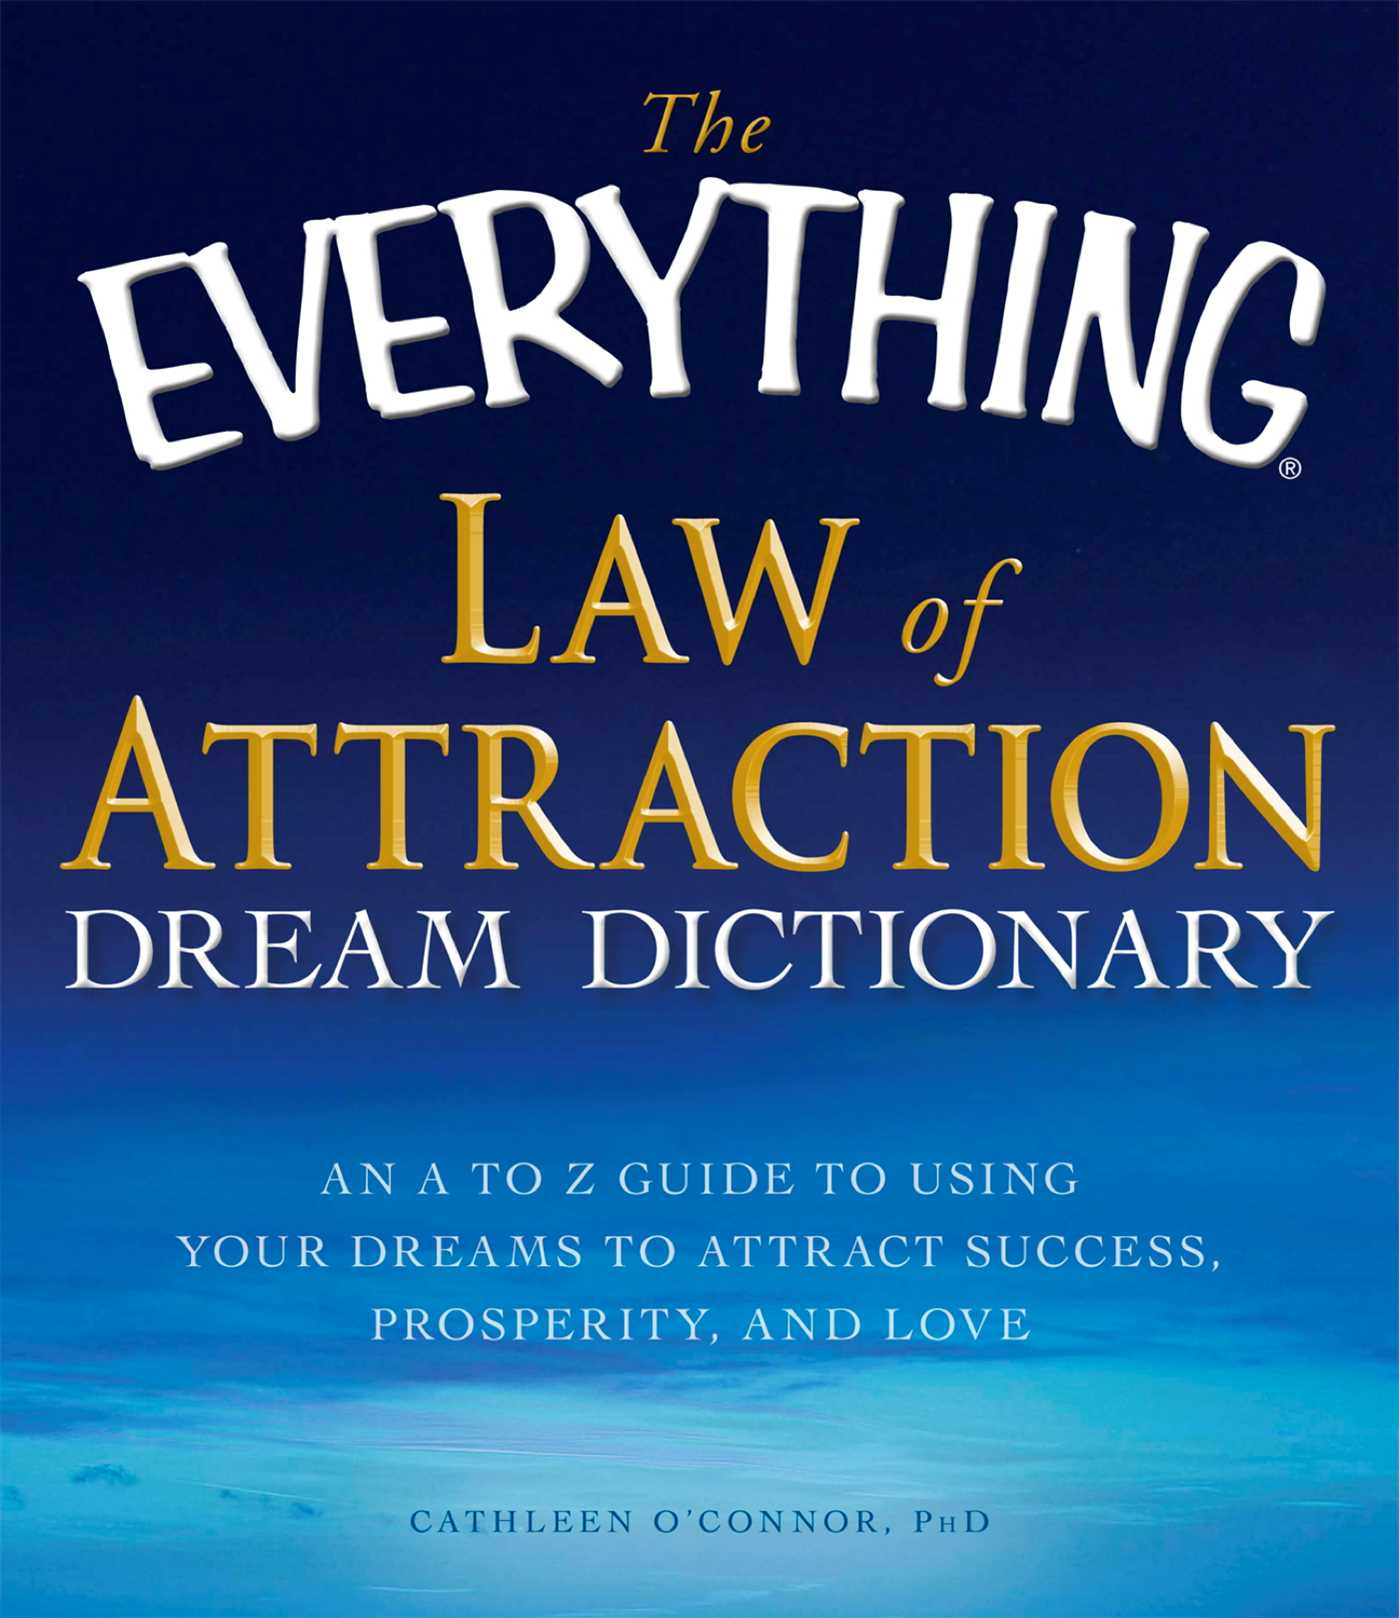 The everything law of attraction dream dictionary 9781440504679 hr